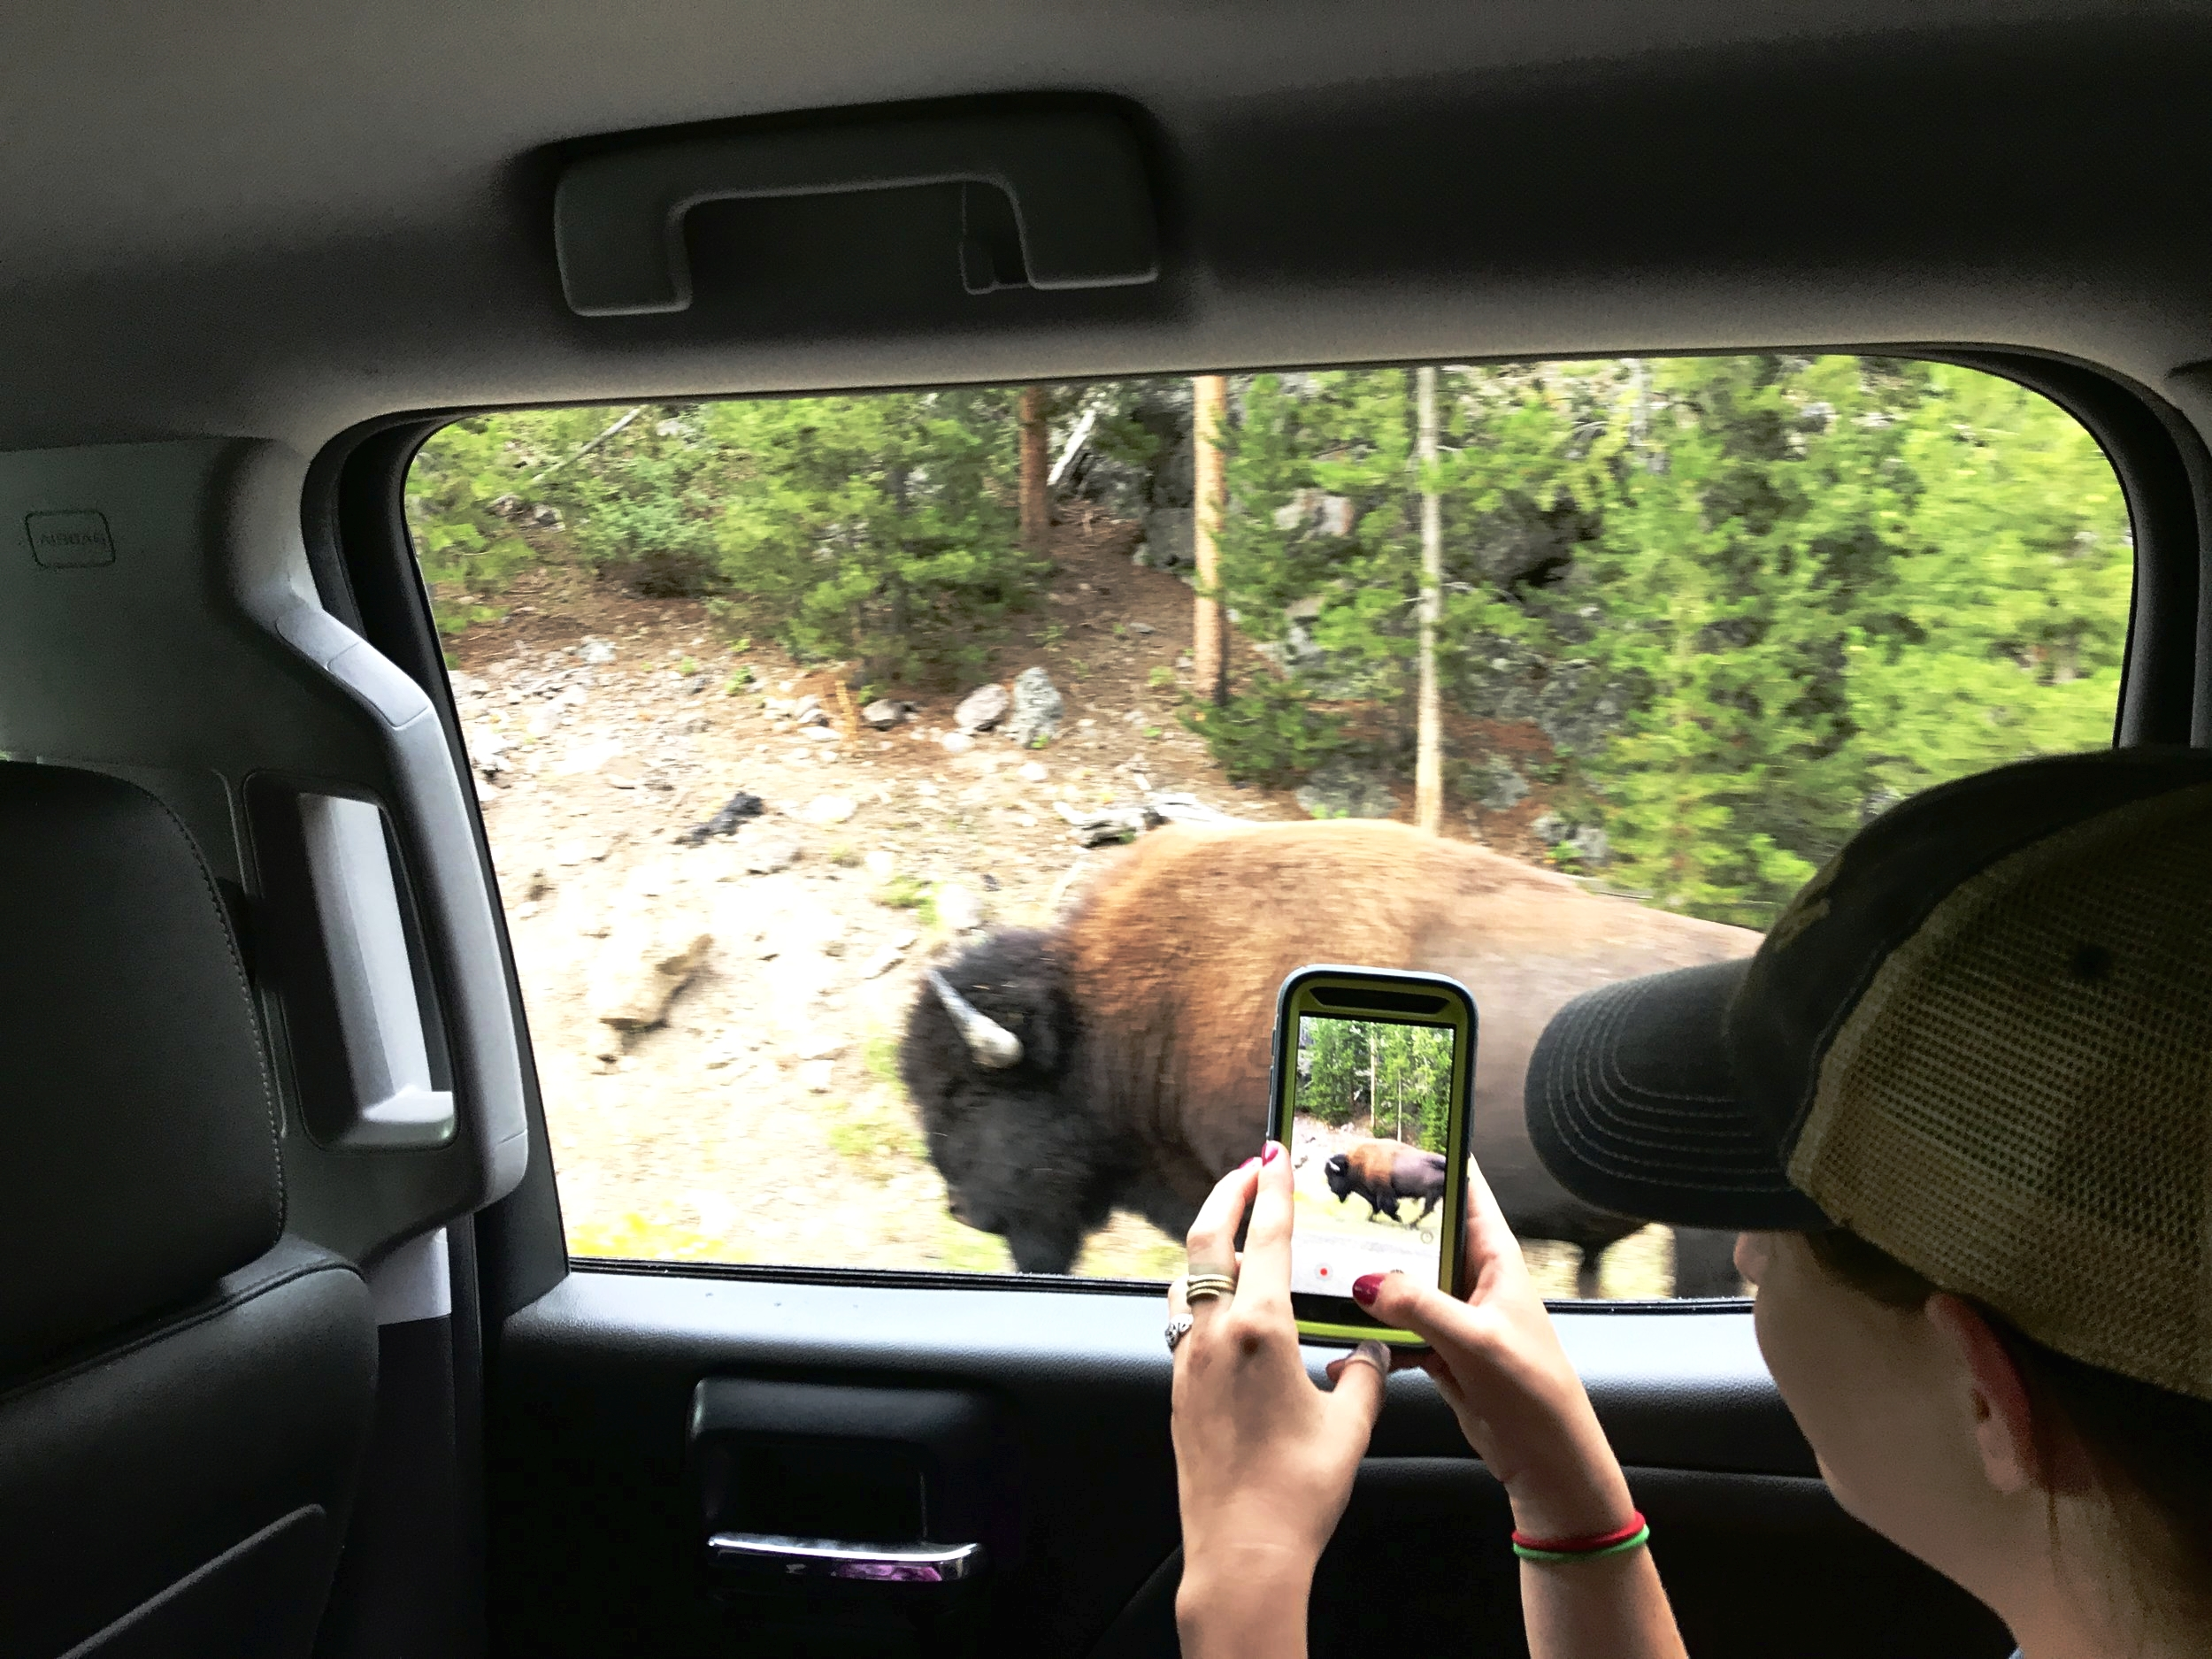 Kori Klingelsmith attempting to blend in like a true YNP tourist. I'm not judging though, bison will always be amazing.